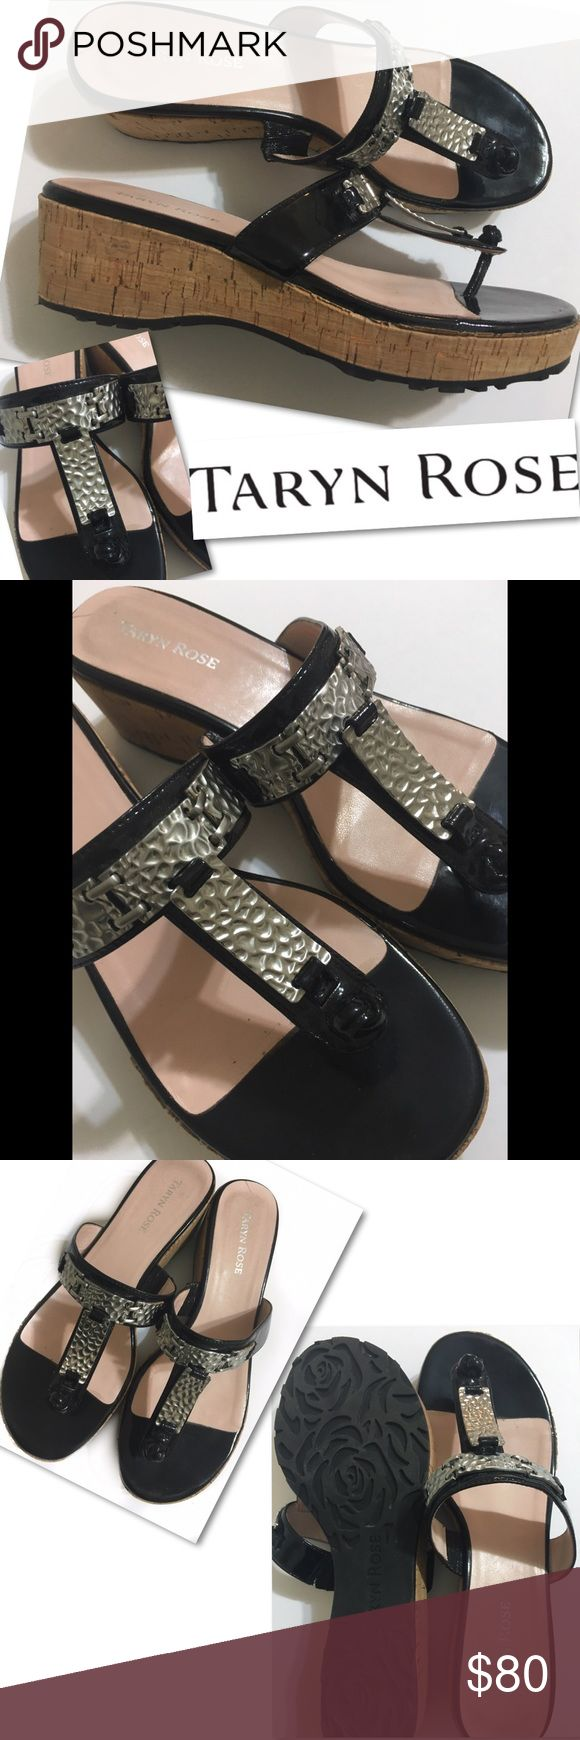 TAYRN ROSE HAMMERED METAL WEDGE SANDALS 8 NEW TAYRN ROSE  HAMMERED METAL SHOES WEDGES SANDALS  SZ 8  only tried on and walked around house basically New Taryn Rose Shoes Sandals